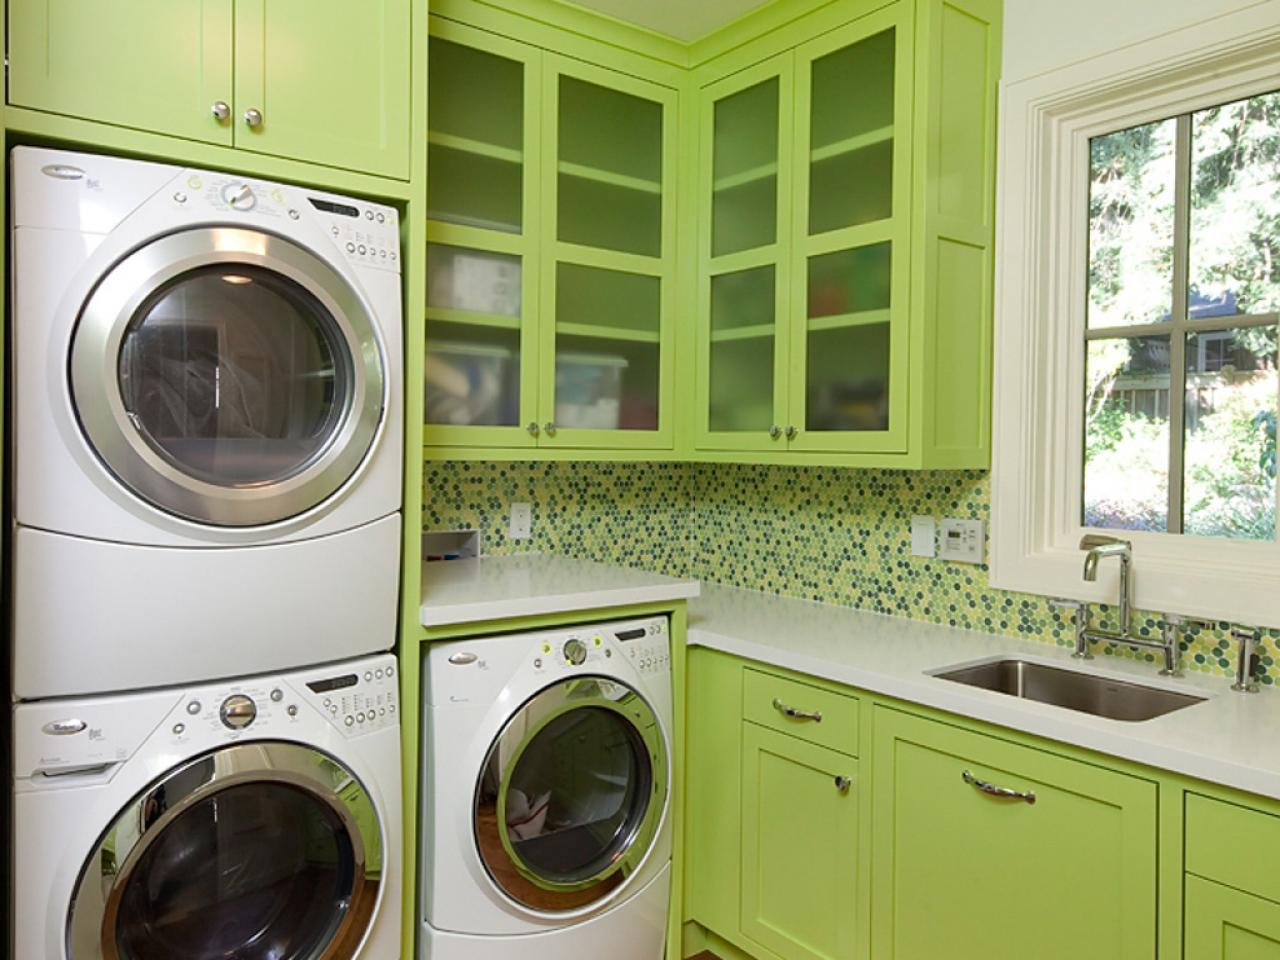 laundry room in kitchen ideas laundry room makeover ideas pictures options tips 25015